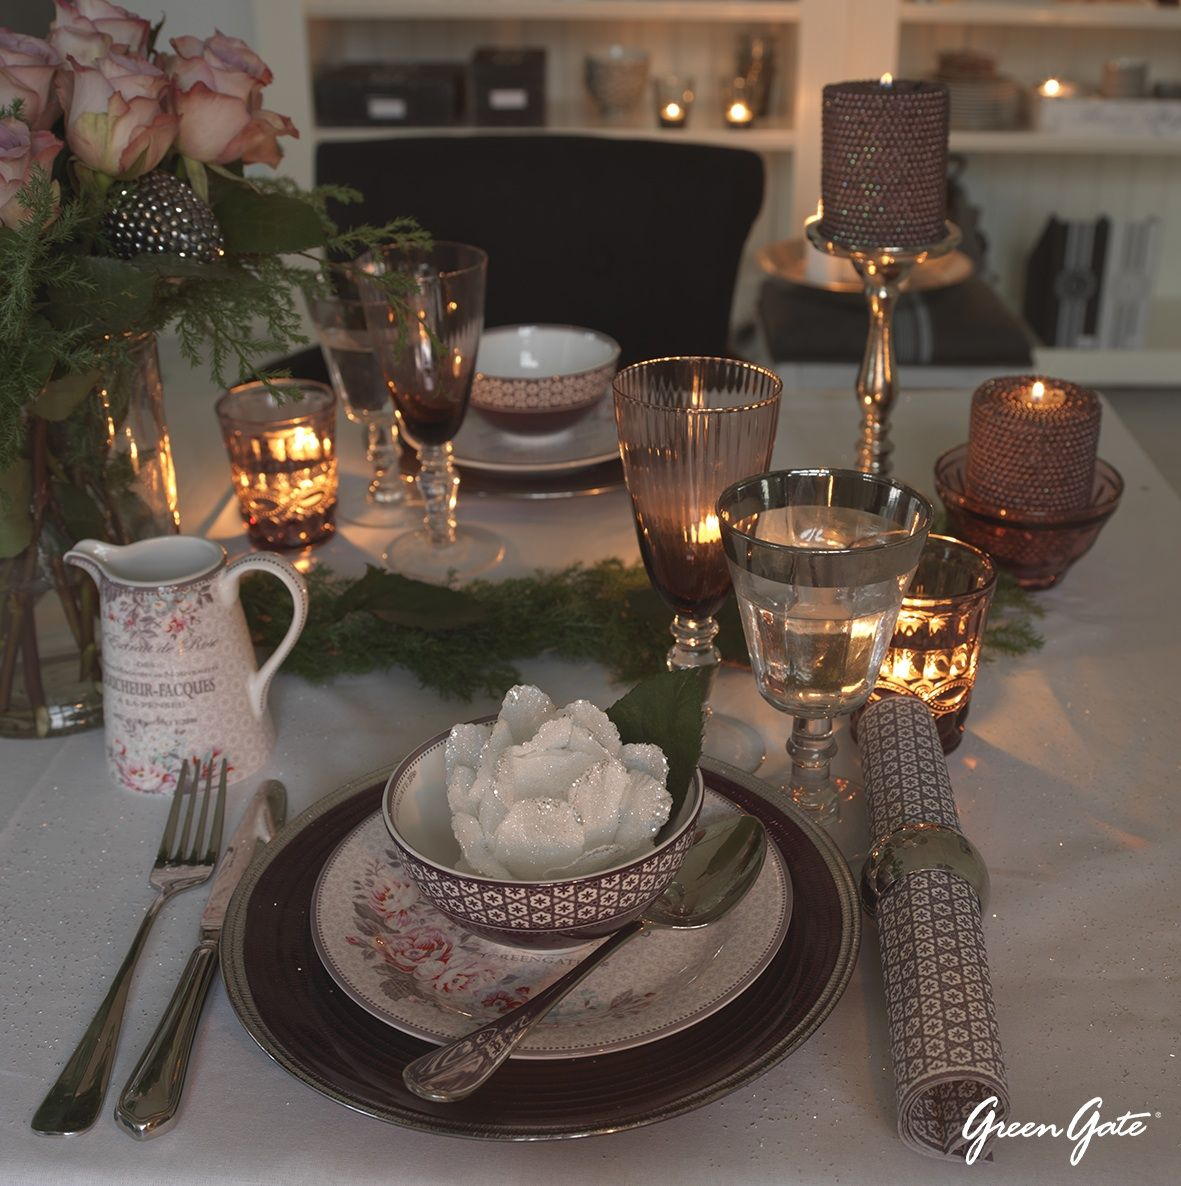 Beautiful Table Setting From Greengate Copenhagen Combines Charming Vintage Floral Pieces With Table Settings Beautiful Table Settings Entertaining Tablescapes